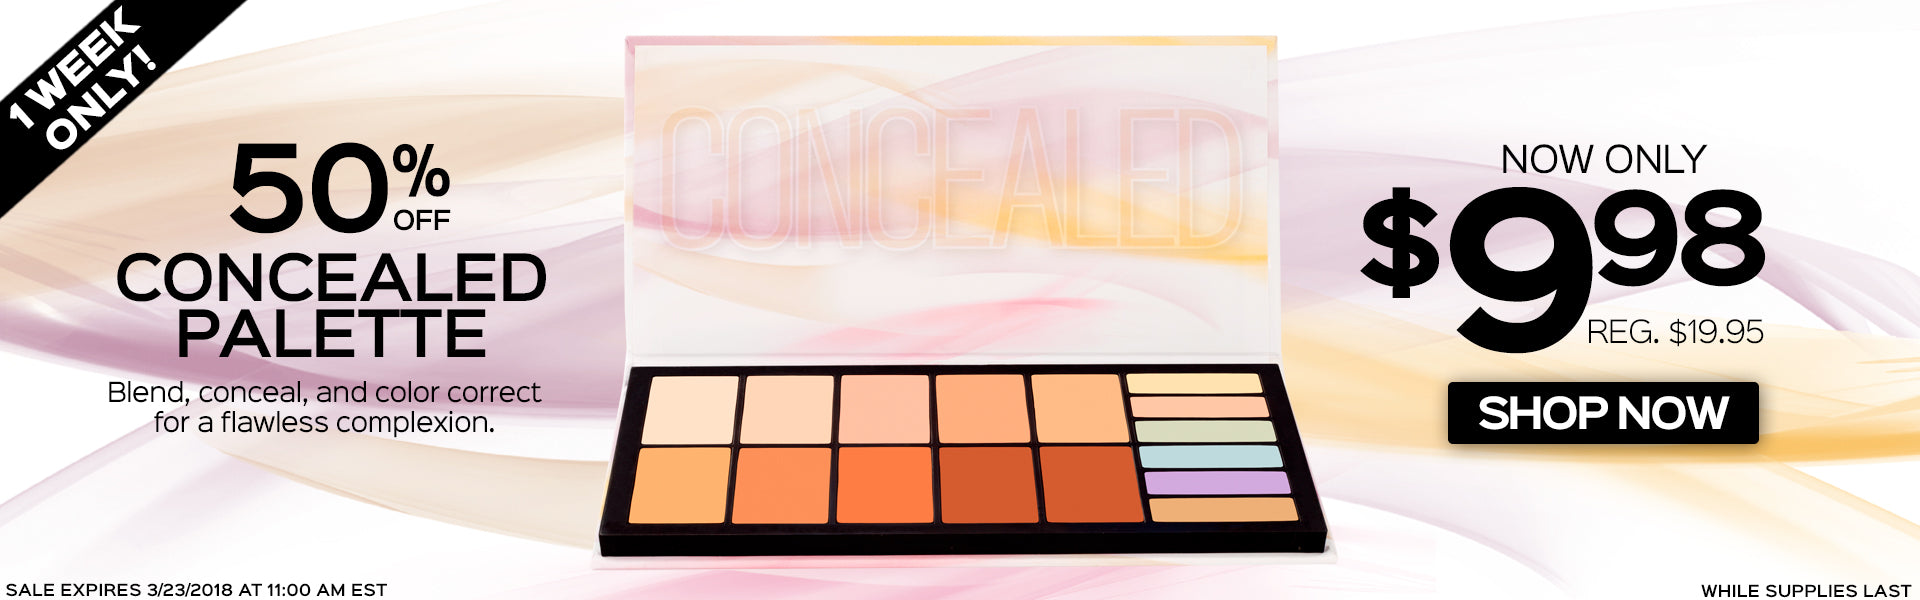 50% OFF Concealed Palette. Now Only $9.98 each, reg. $19.95!